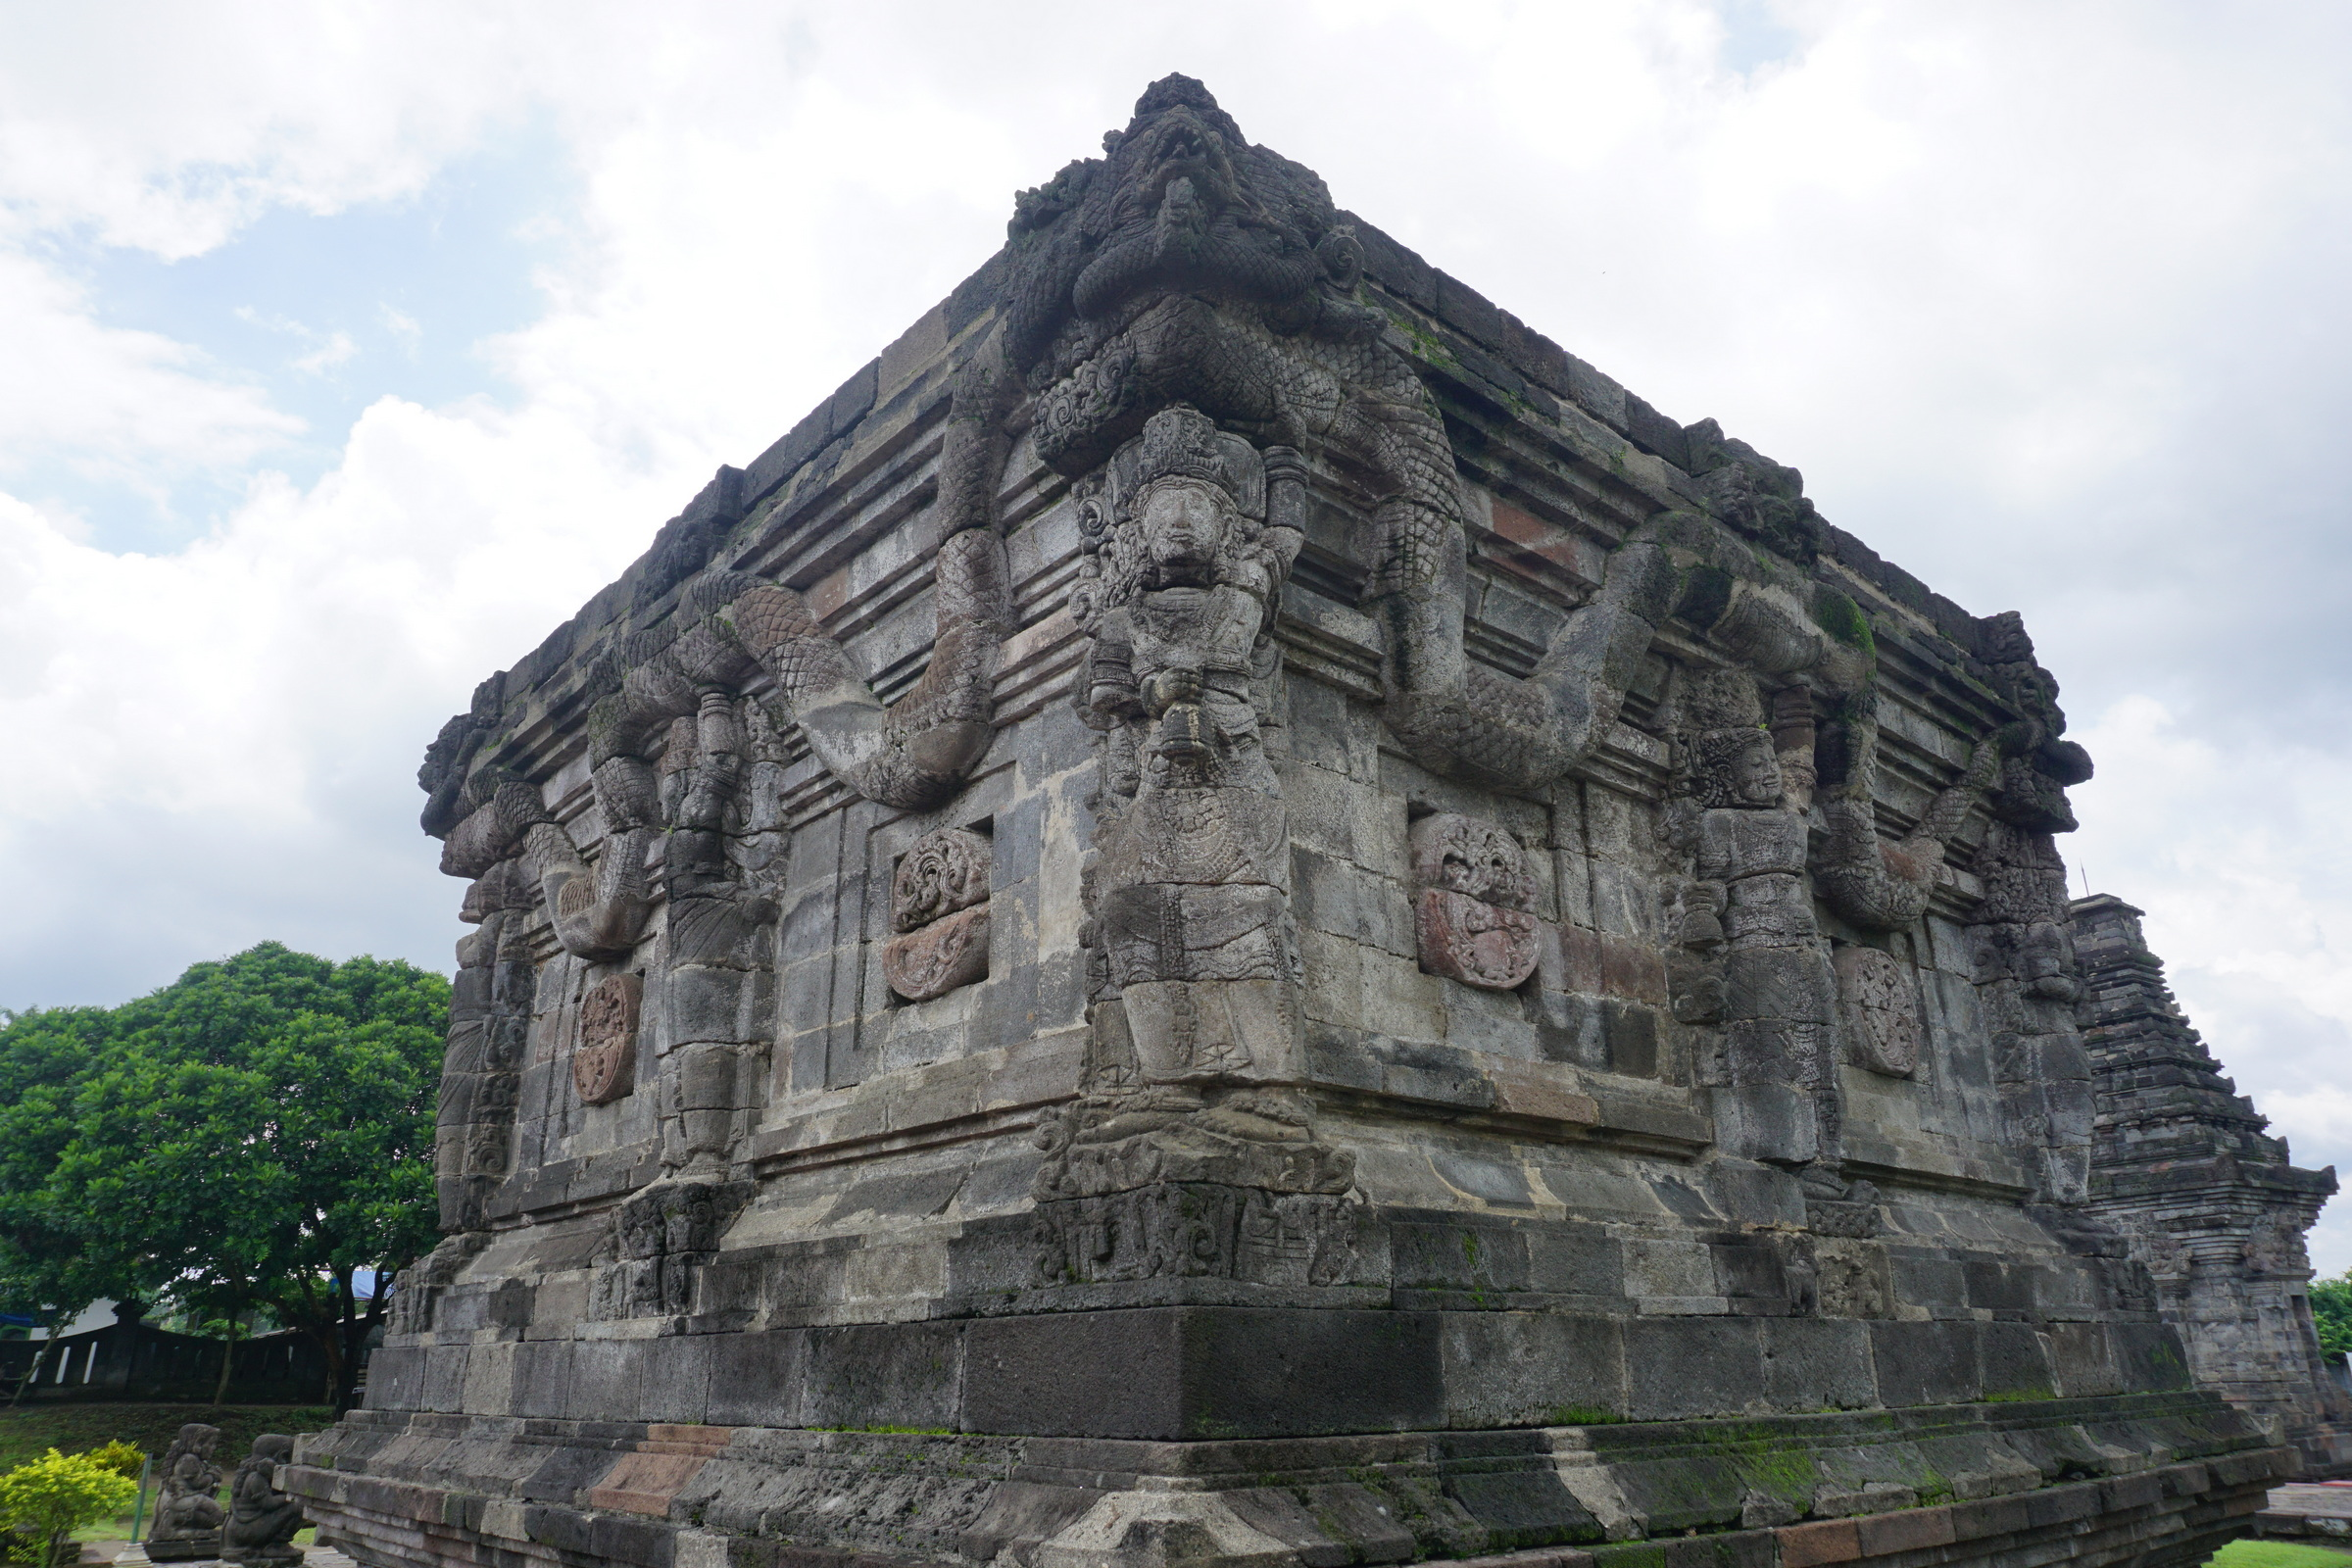 Naga Temple at Candi Penataran